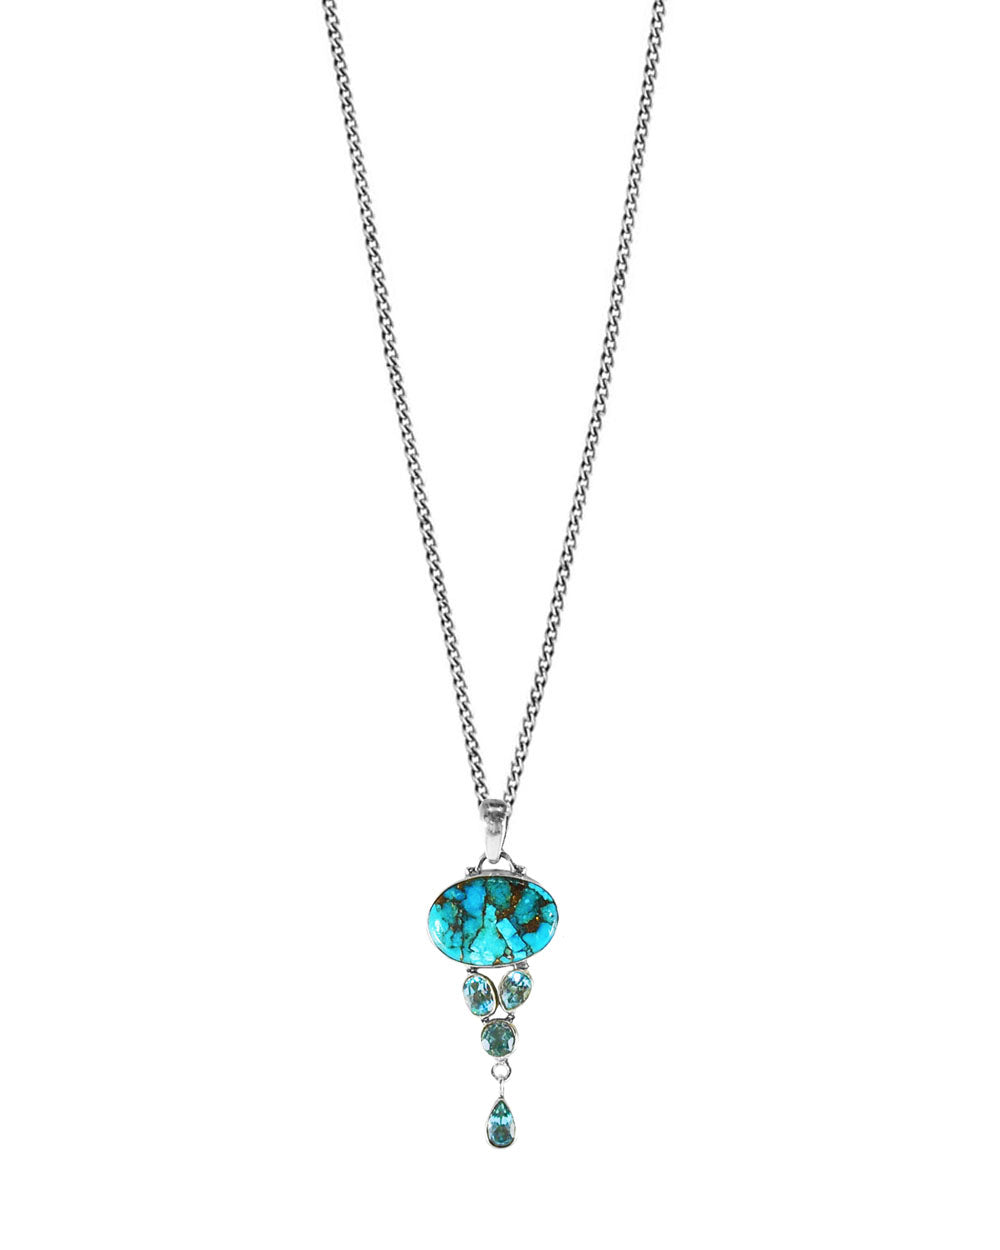 Turquoise and Blue Topaz Multi-gem Sterling Silver Necklace